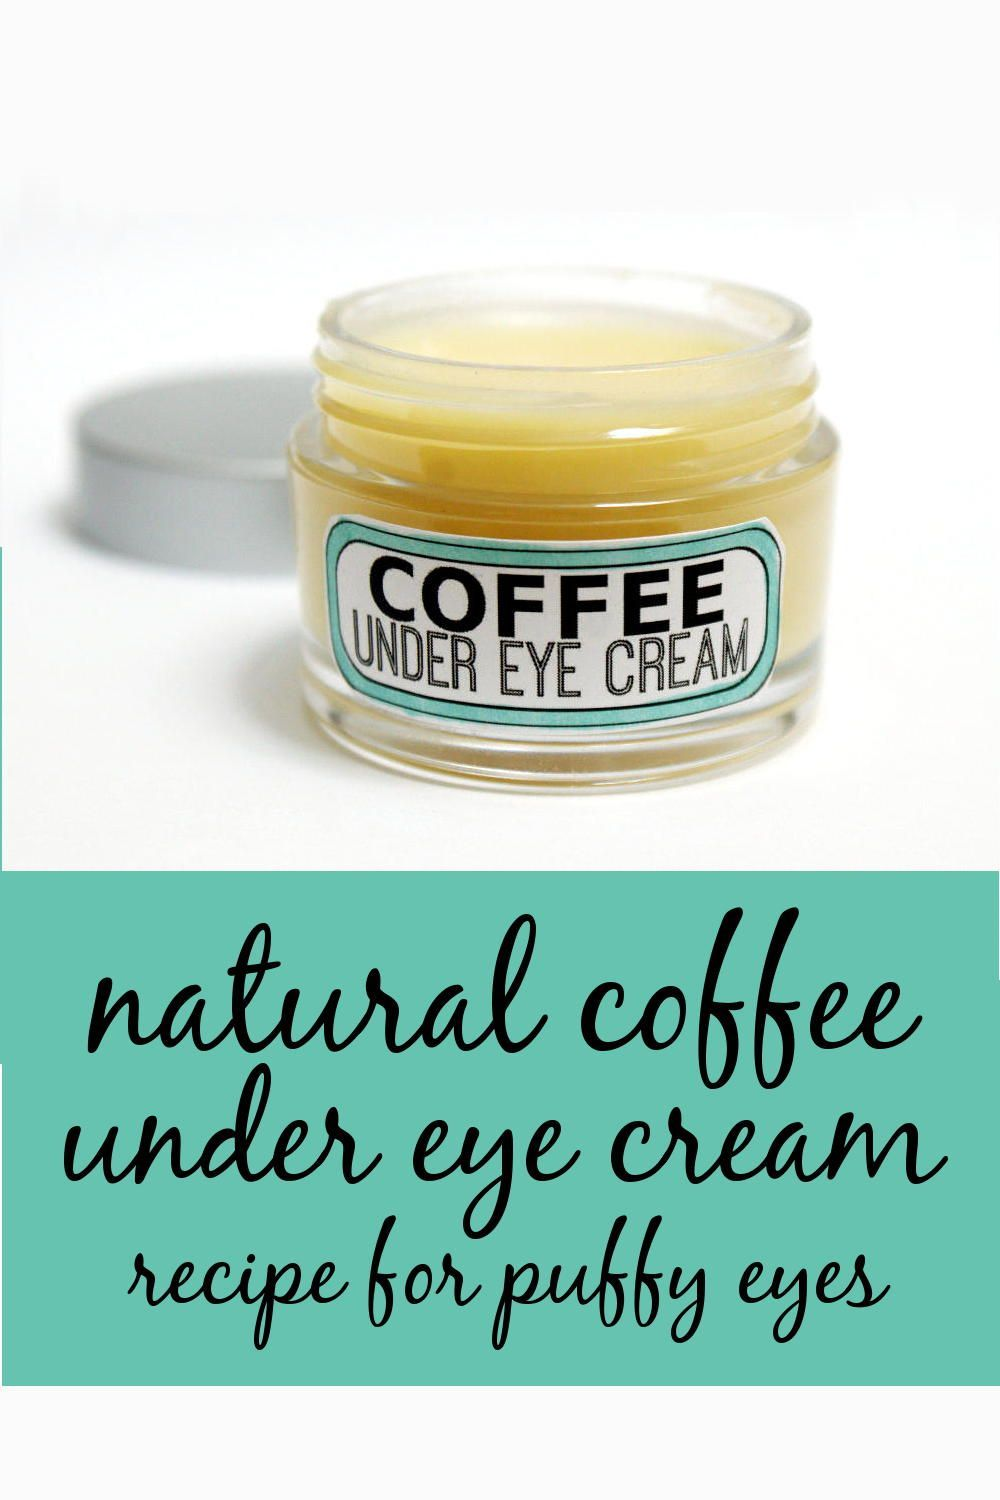 Coffee Eye Cream: A Natural Puffy Eyes Remedy for Natural Beauty This homemade natural coffee under eye cream recipe is made using homemade coffee infused oil to help with those dark under eye circles, puffiness and even fine lines.This homemade natural coffee under eye cream recipe is made using homemade coffee infused oil to help with those dark under eye circles,...